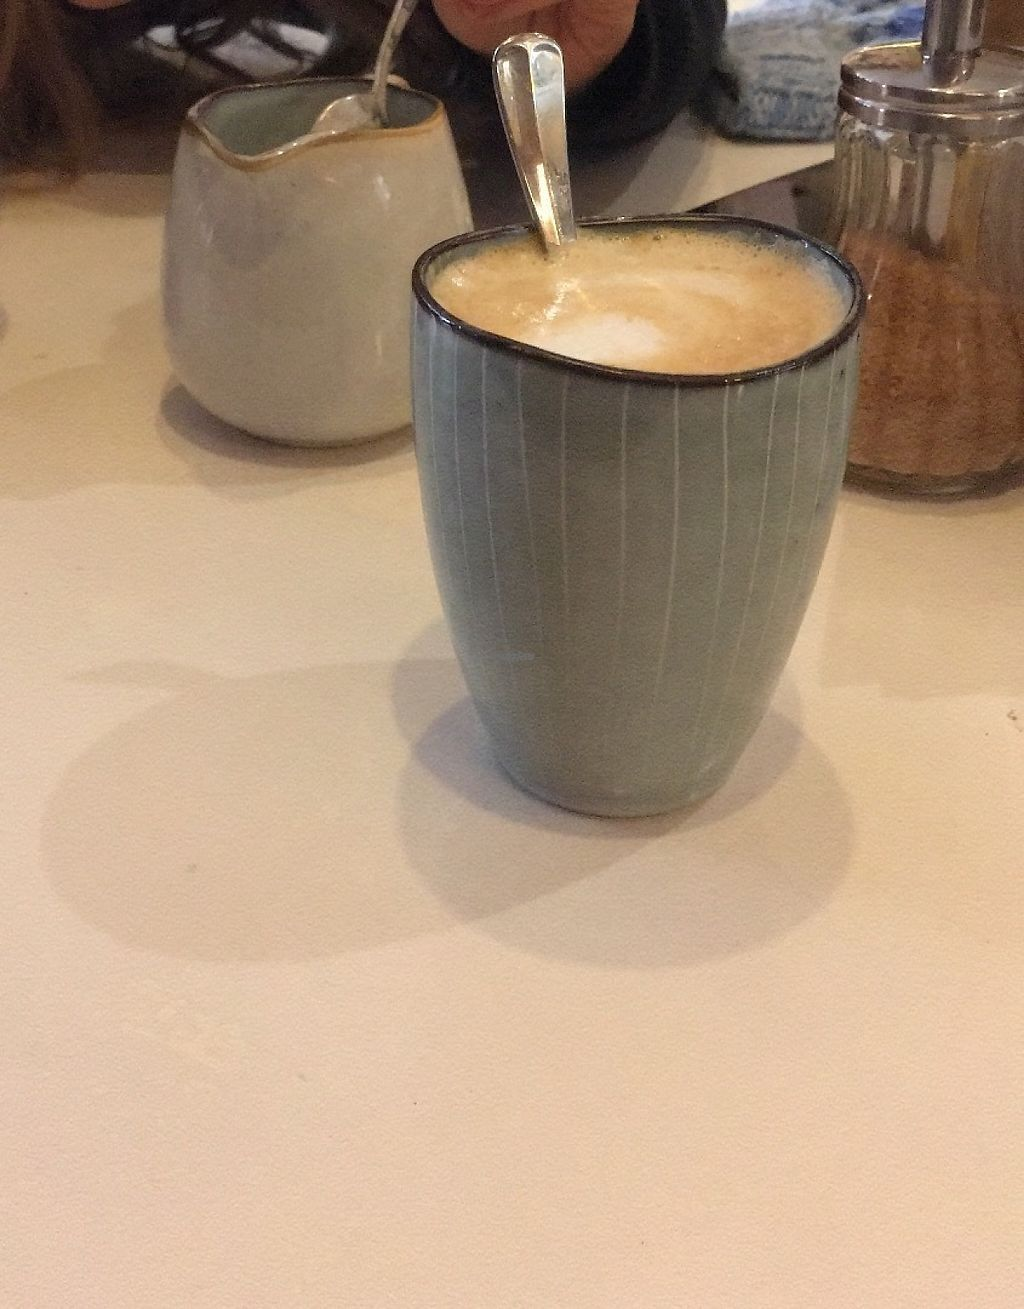 """Photo of Lavinia Good Food  by <a href=""""/members/profile/LouiseJT"""">LouiseJT</a> <br/>Lovely almond milk latte <br/> March 3, 2017  - <a href='/contact/abuse/image/53387/232144'>Report</a>"""